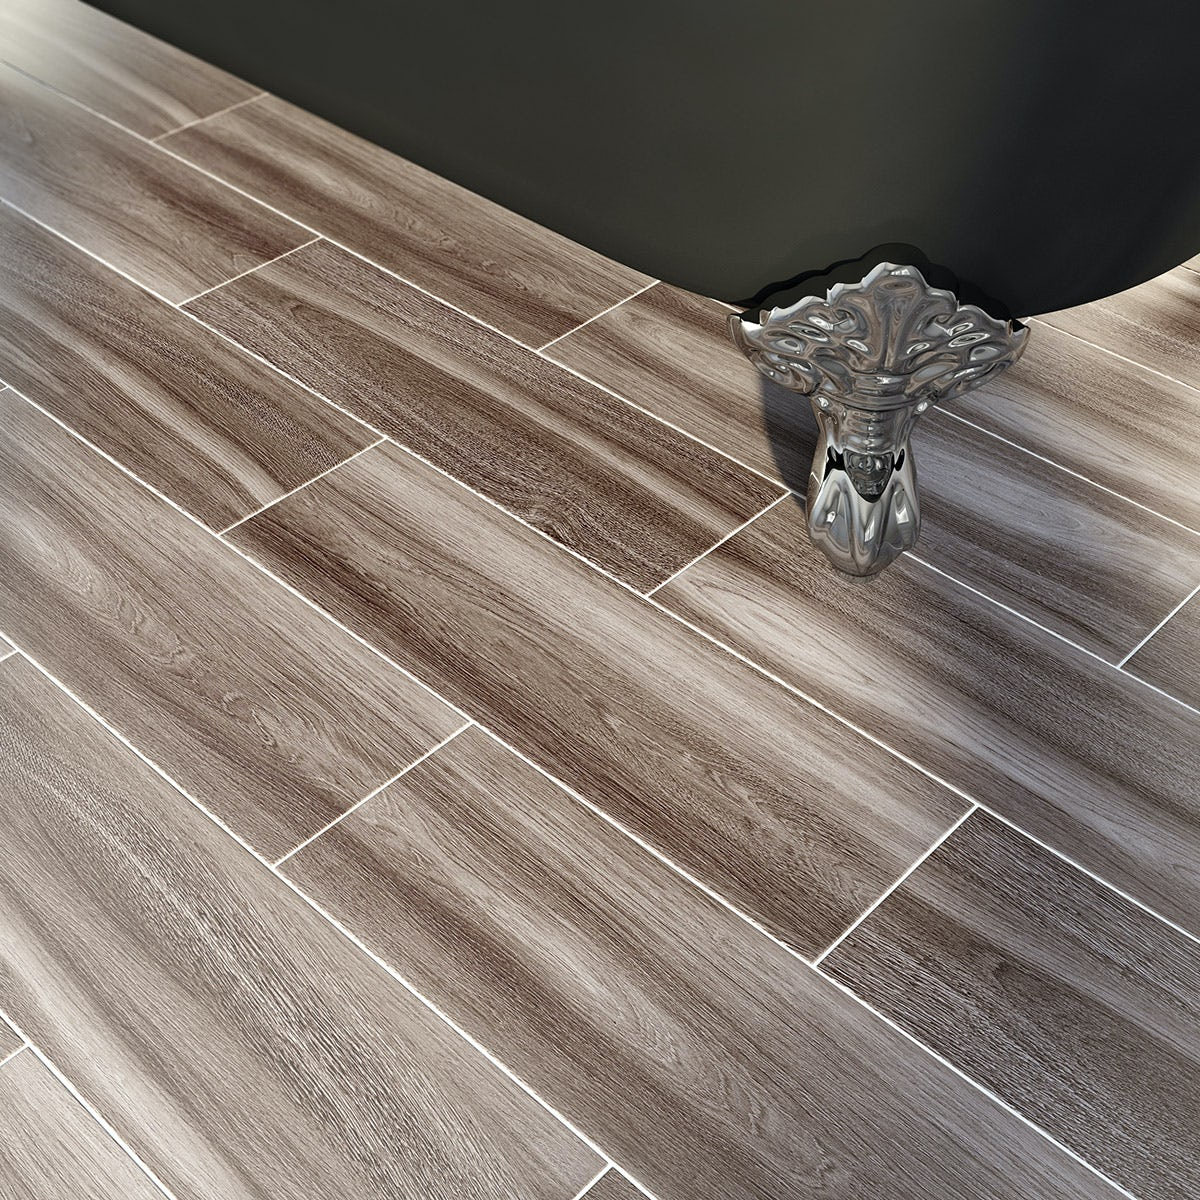 British Ceramic Tile Bark grey wood effect grey matt tile 148mm x 498mm